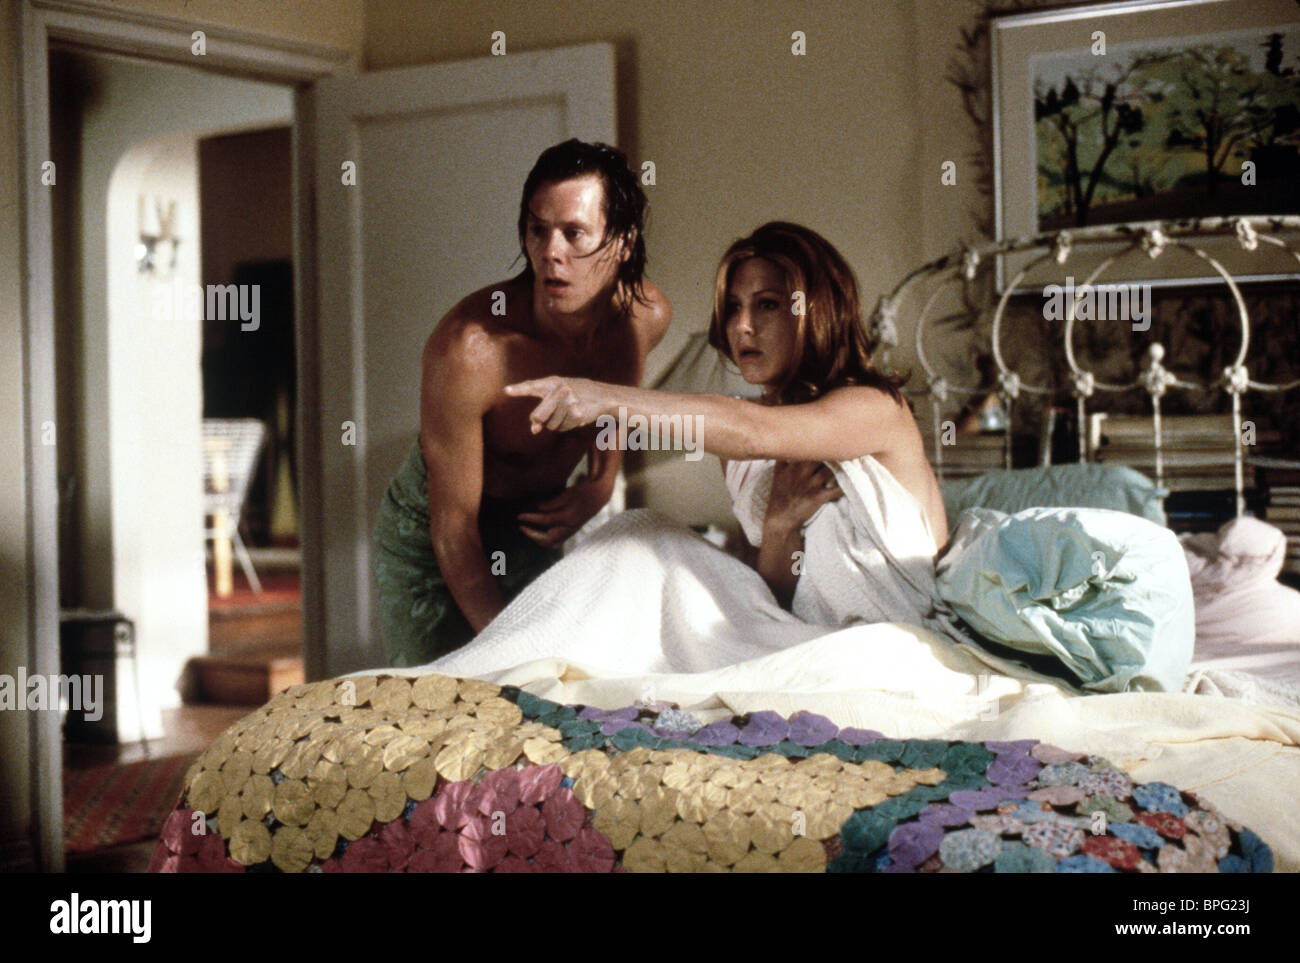 KEVIN BACON & JENNIFER ANISTON PICTURE PERFECT (1997 Stock Photo ...